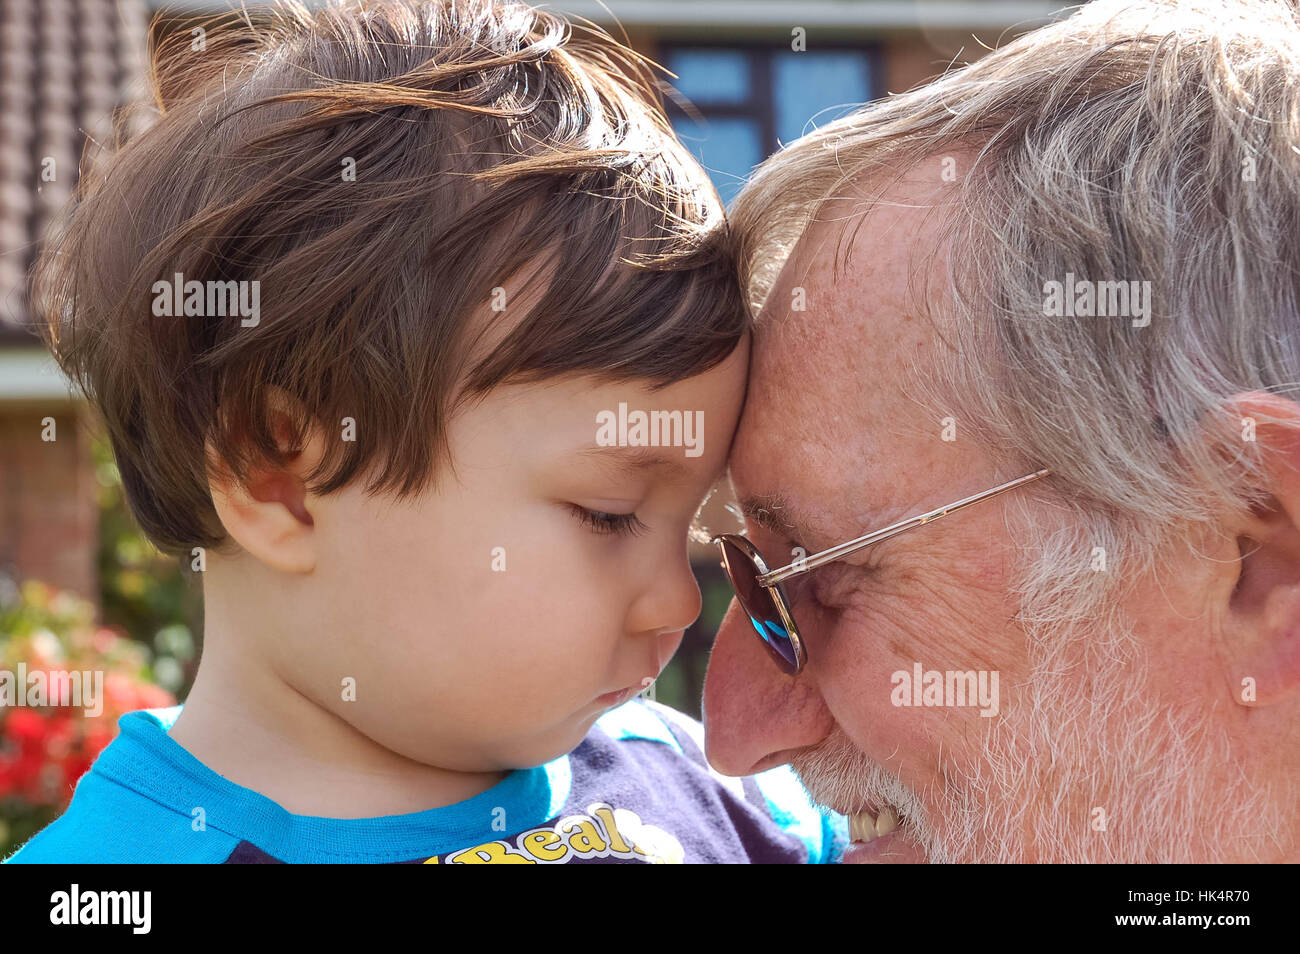 a-grandfather-with-his-young-grandson-HK4R70.jpg